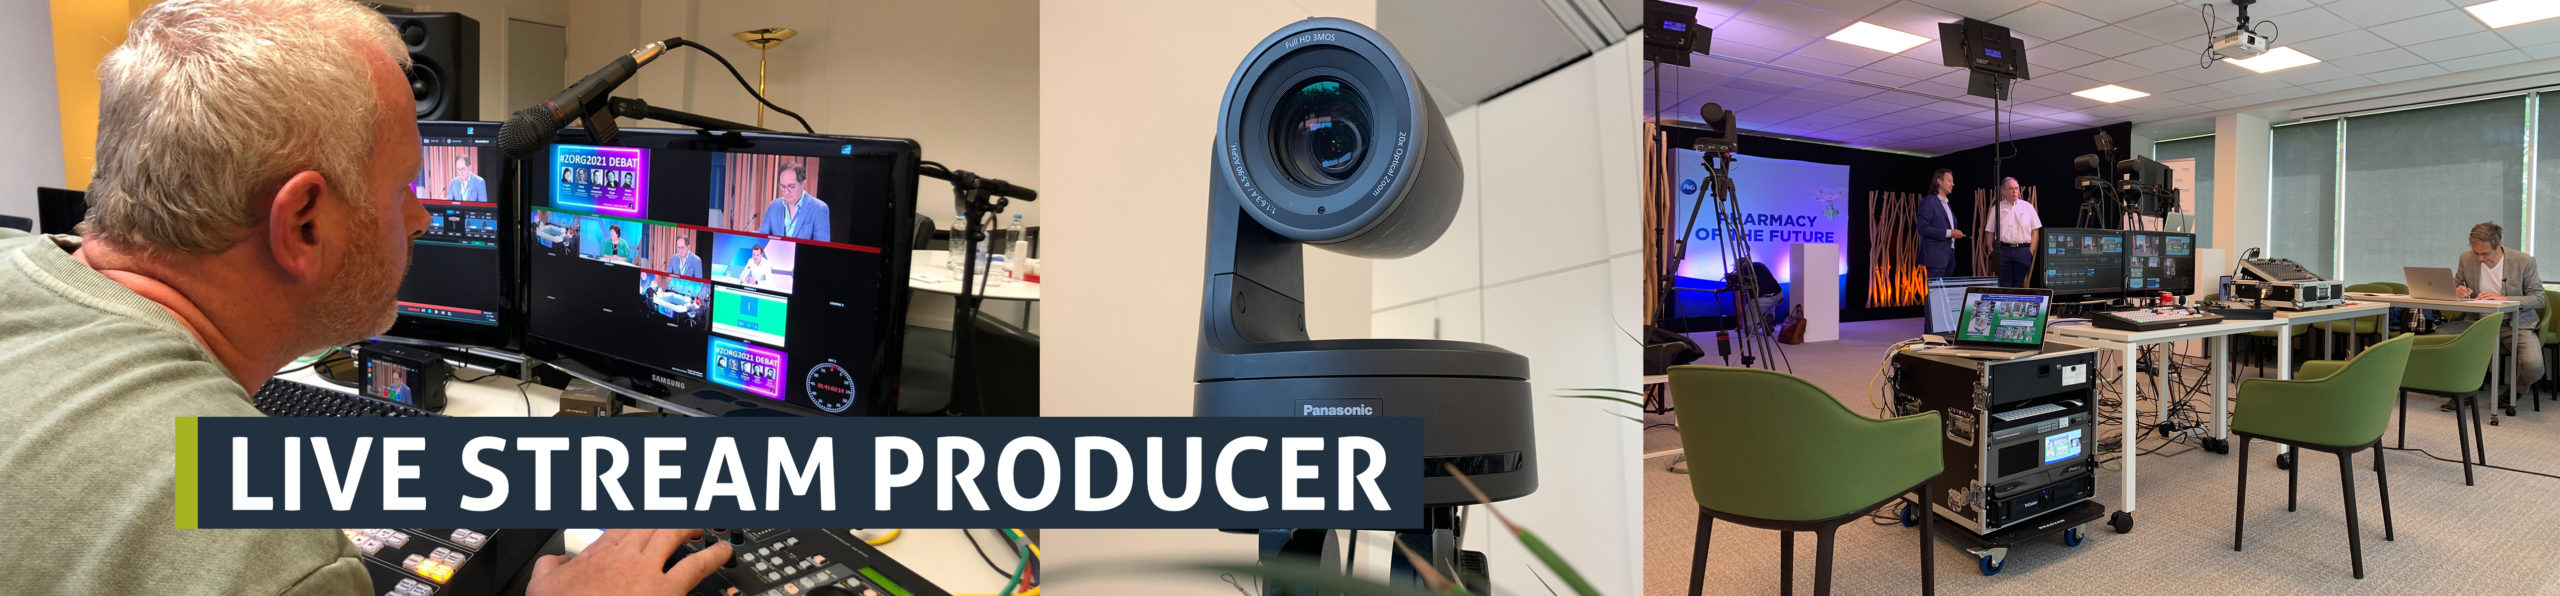 vacature-live-stream-producer